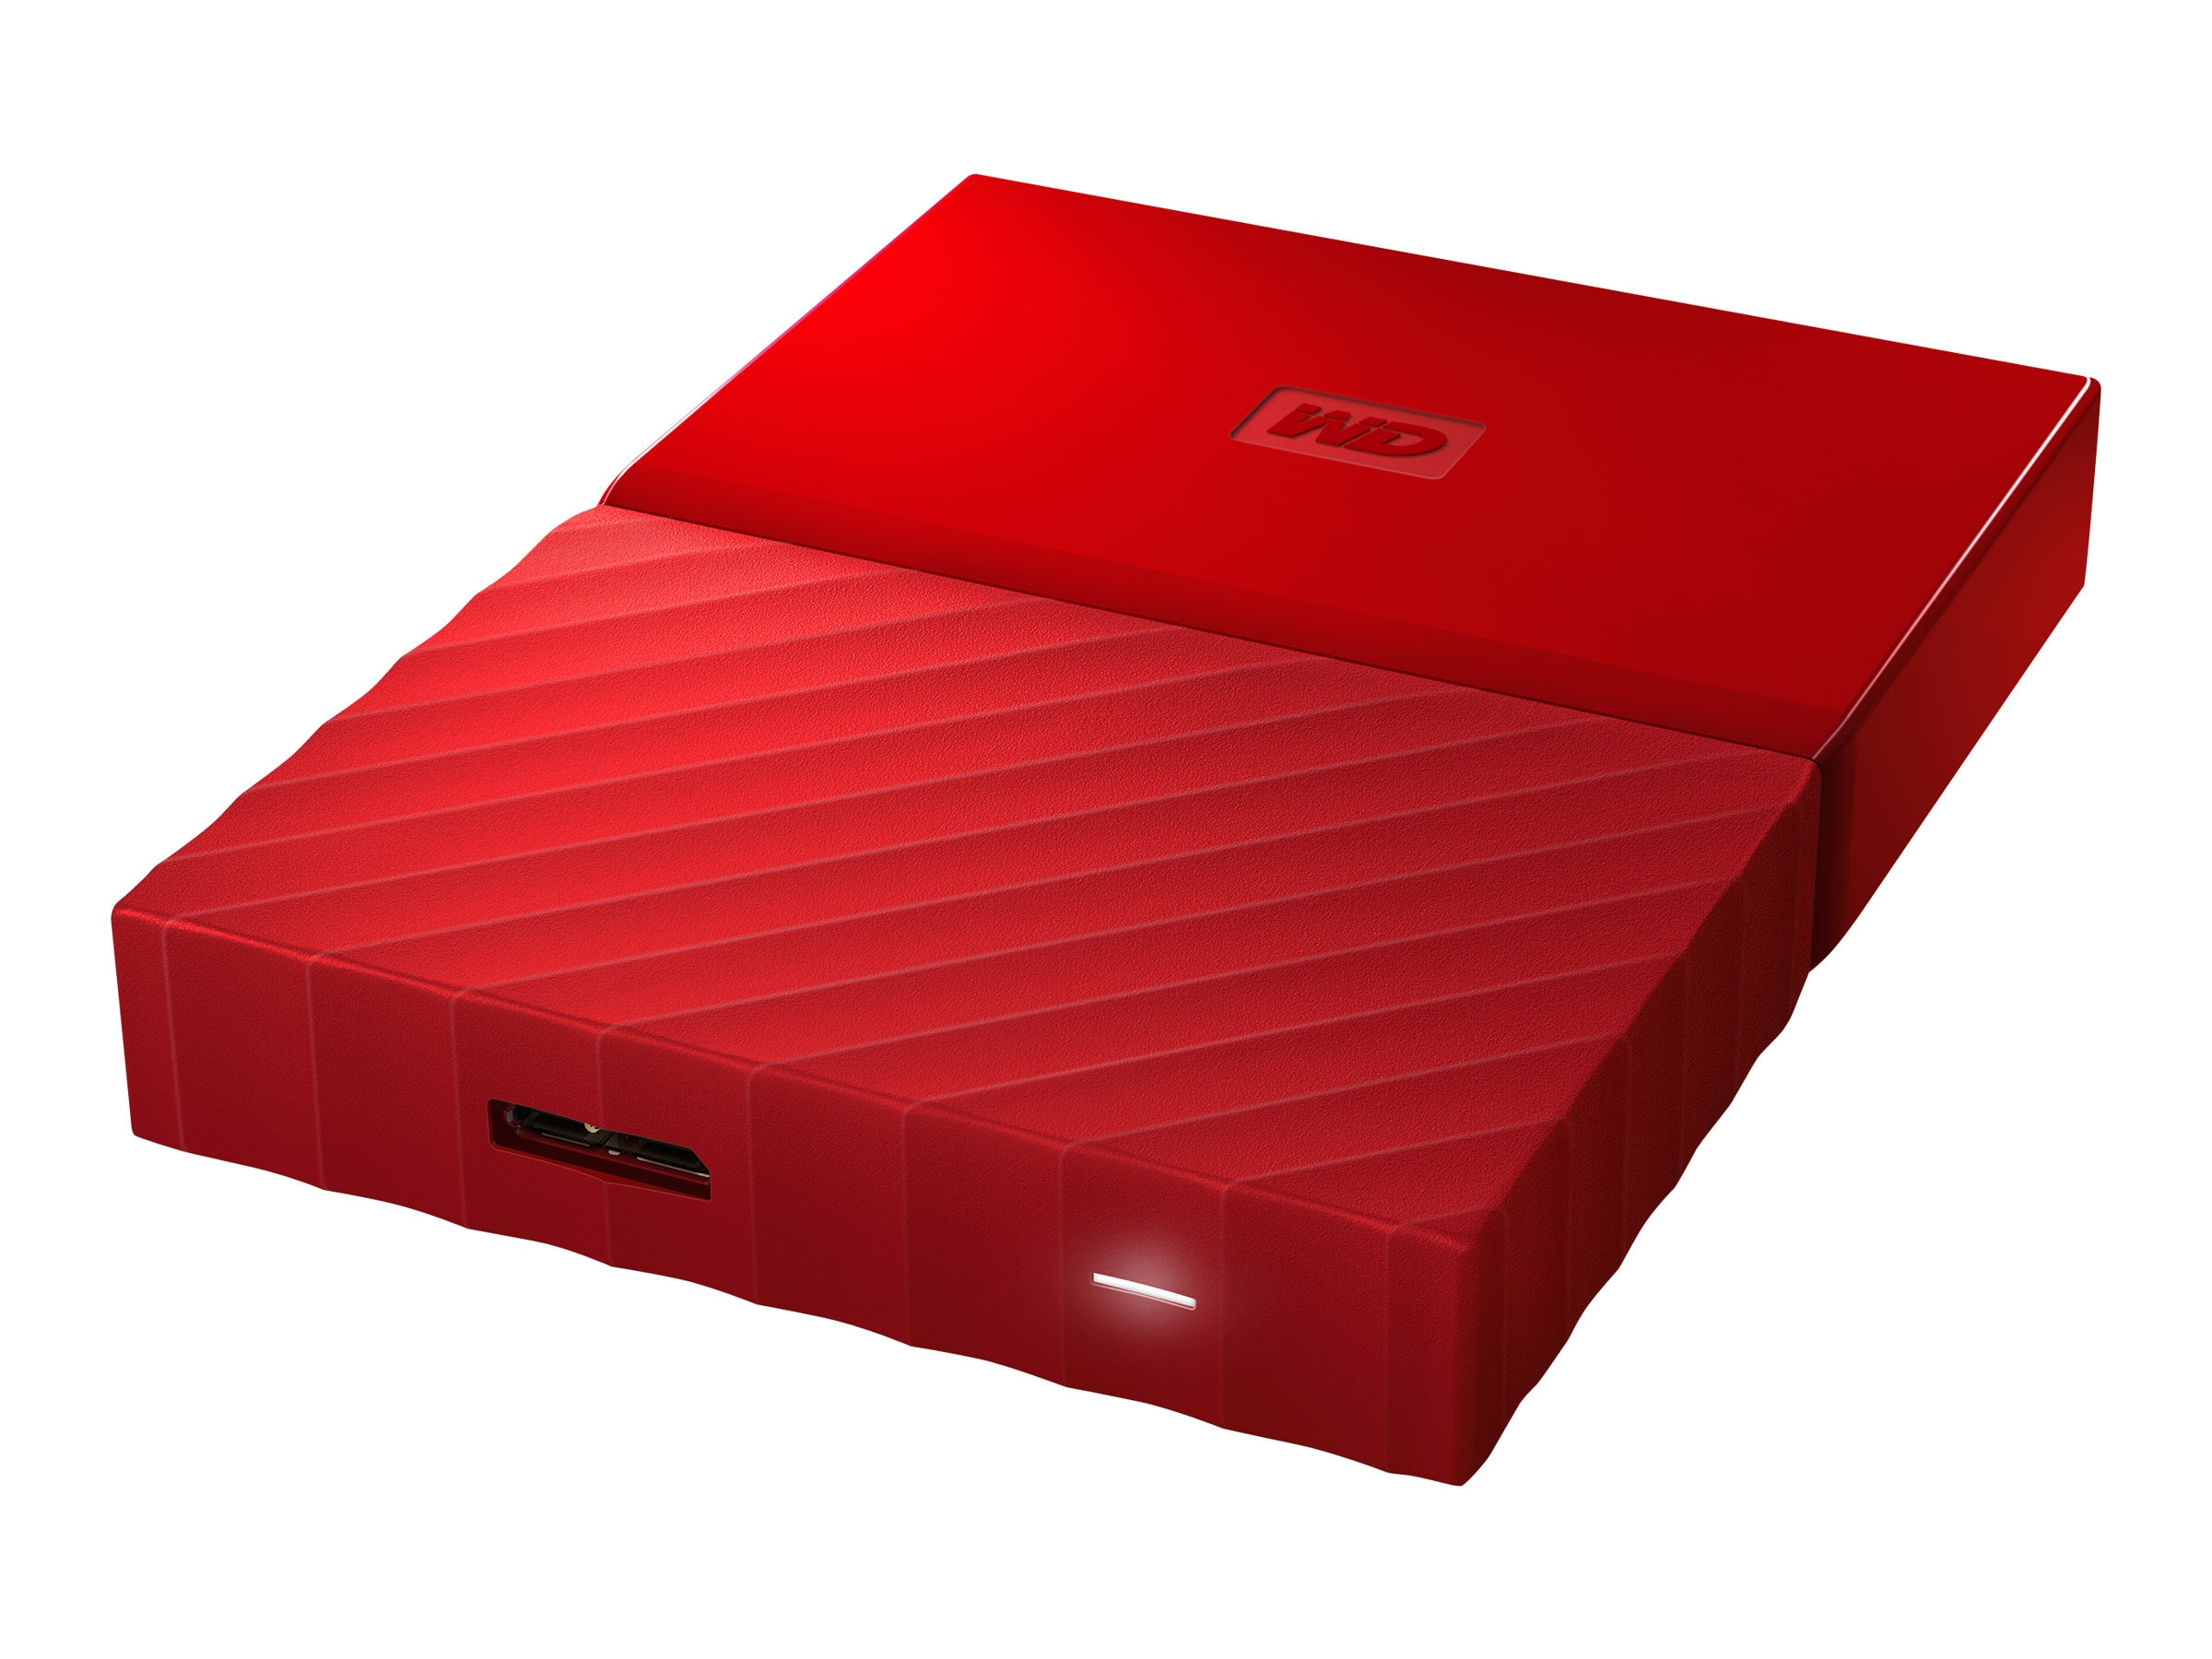 WD 1TB My Passport USB 3.0 Portable Hard Drive - Red